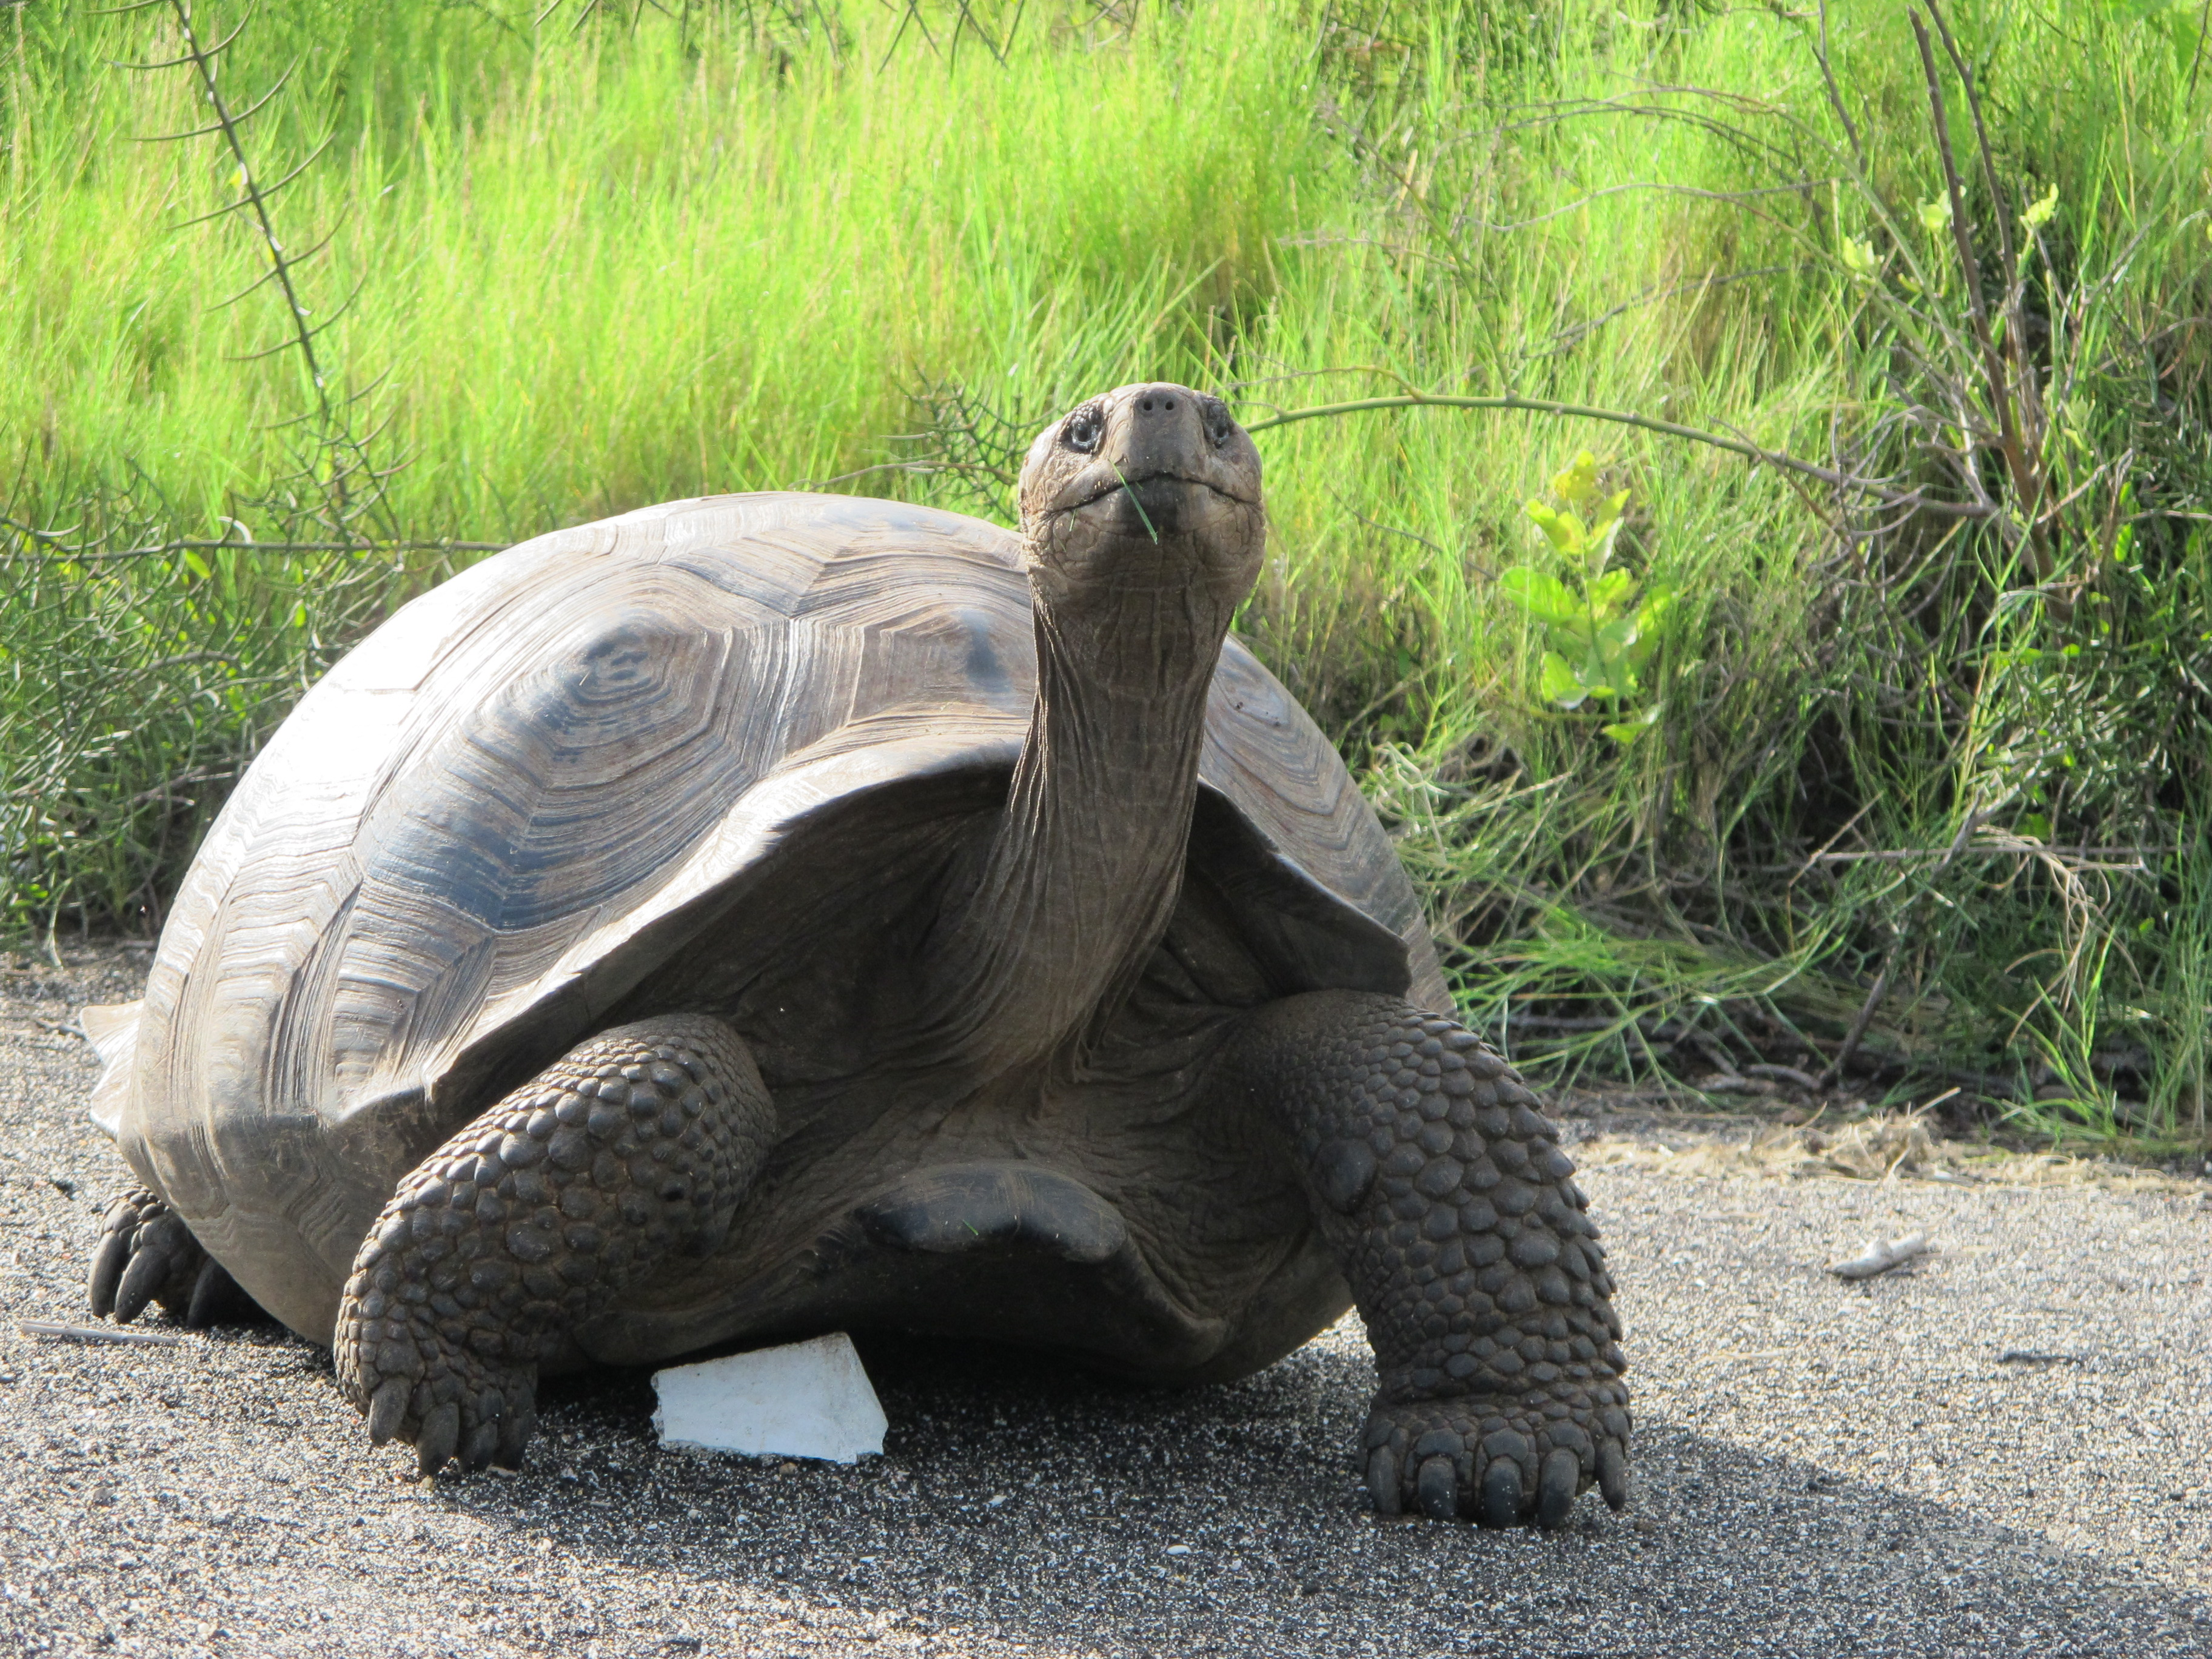 A Galapagos Giant Tortoise &#039;striking a pose&#039; at Urbina Bay